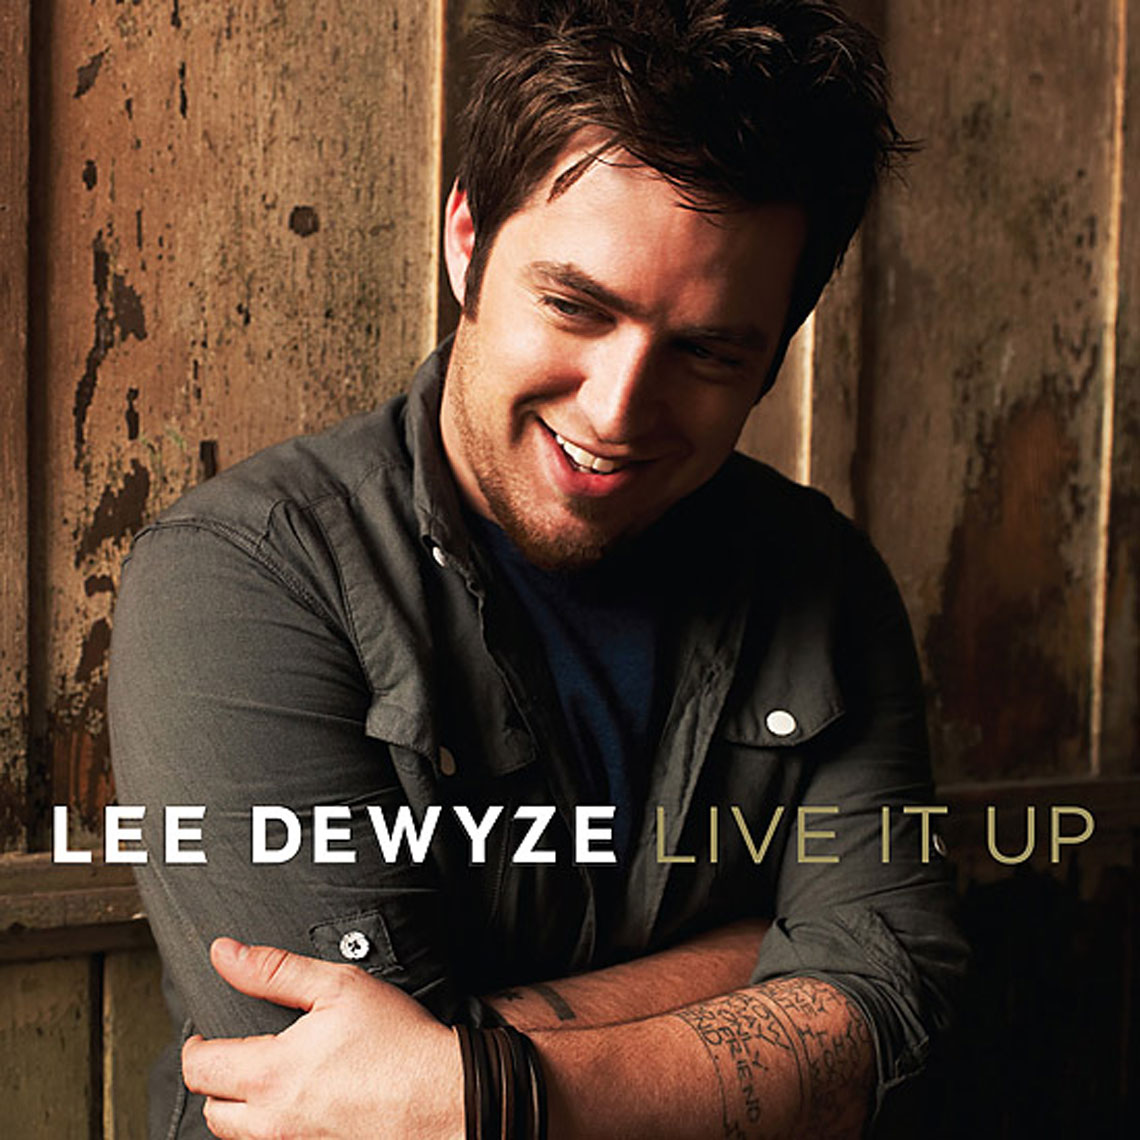 LEE-DEWYZE-LIVE-IT-UP-COVER_blog550-copy